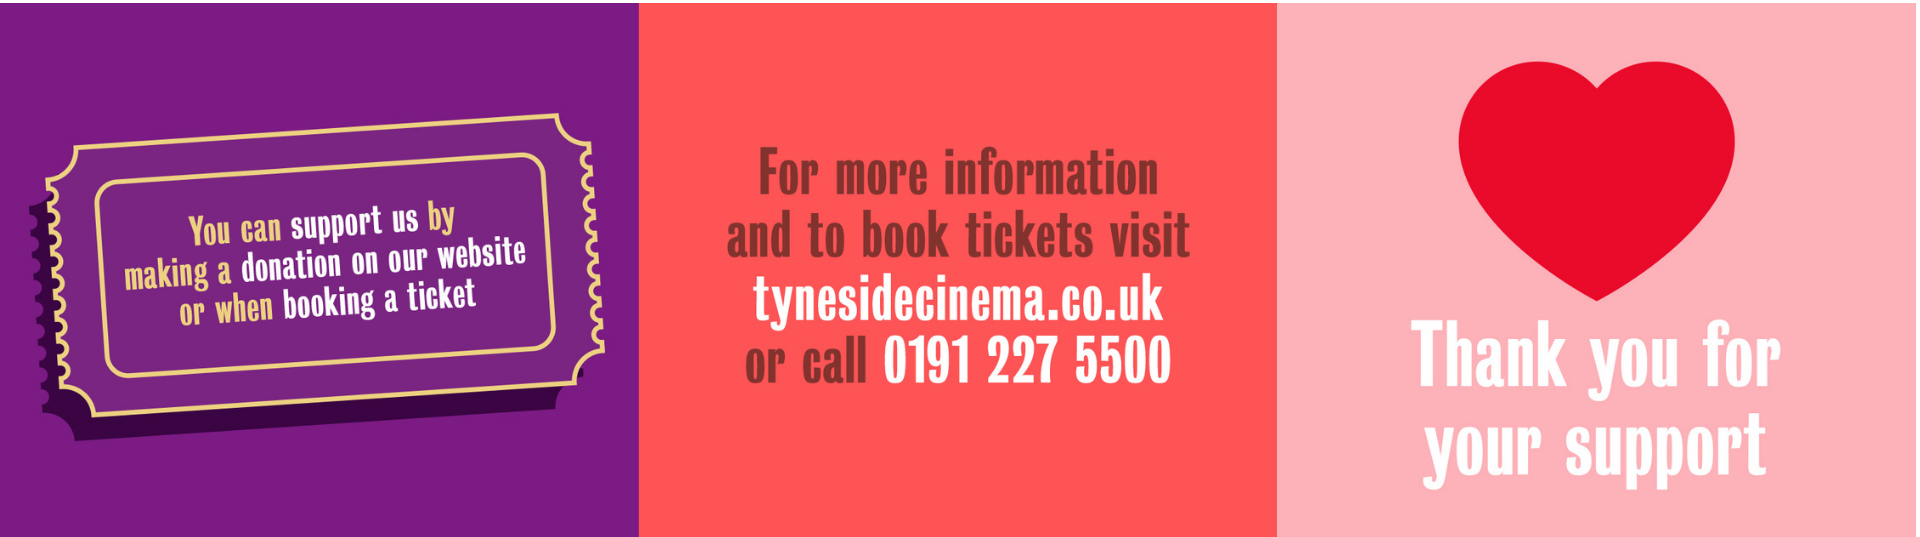 You can support us by making a donation on our website or when booking a ticket. Foe more information and to book tickets visit tynesidecinema.co.uk or call 0191 227 5500. Thank you for your support.